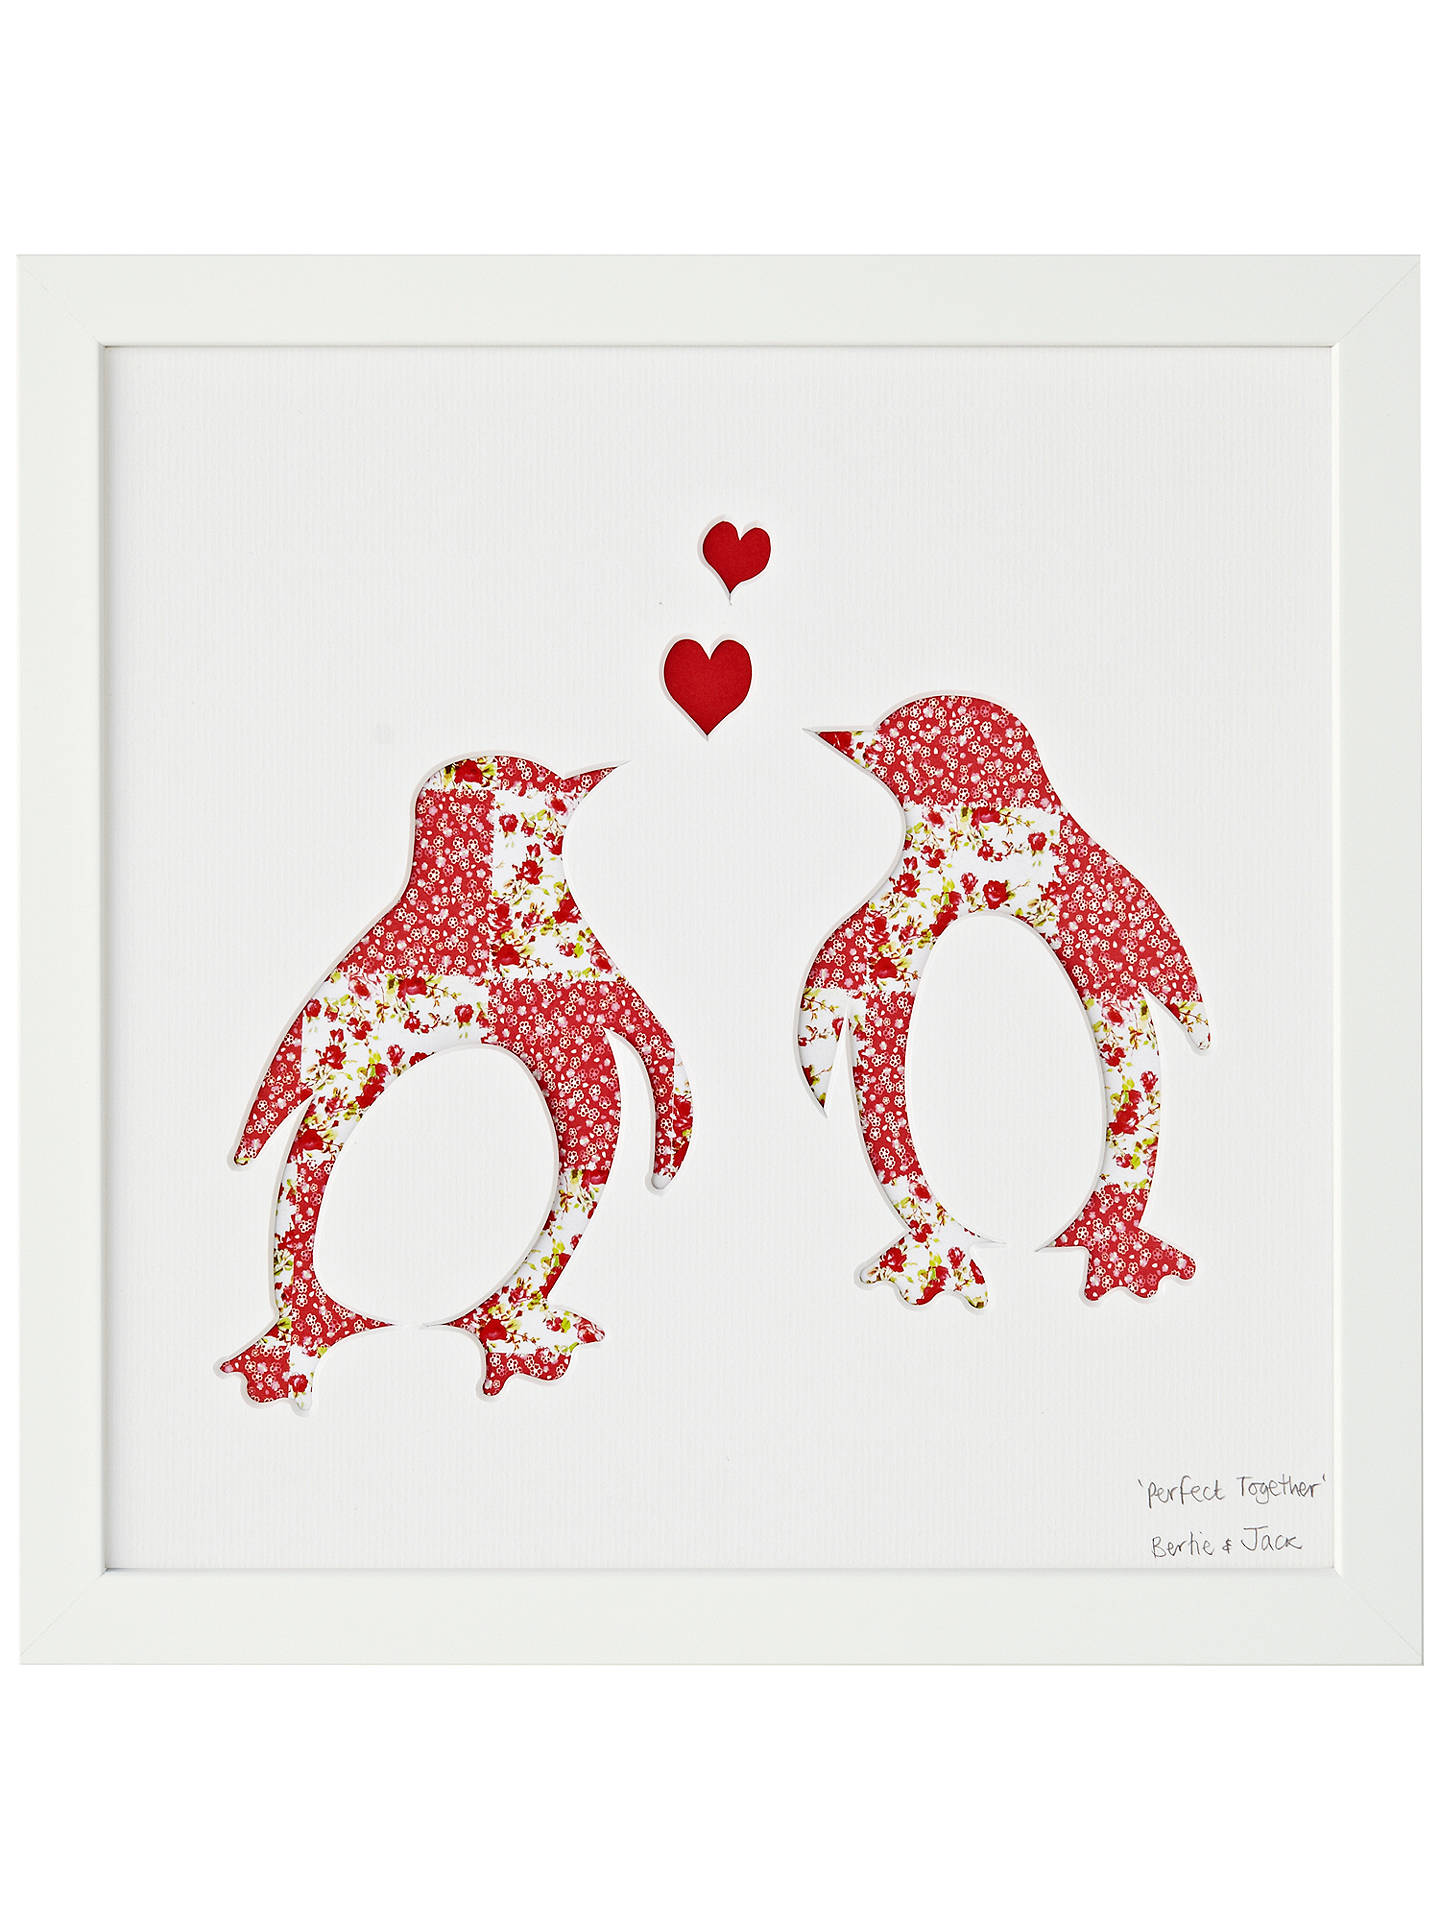 BuyBertie Jack Perfect Together Penguin Framed Cut Out 274 X